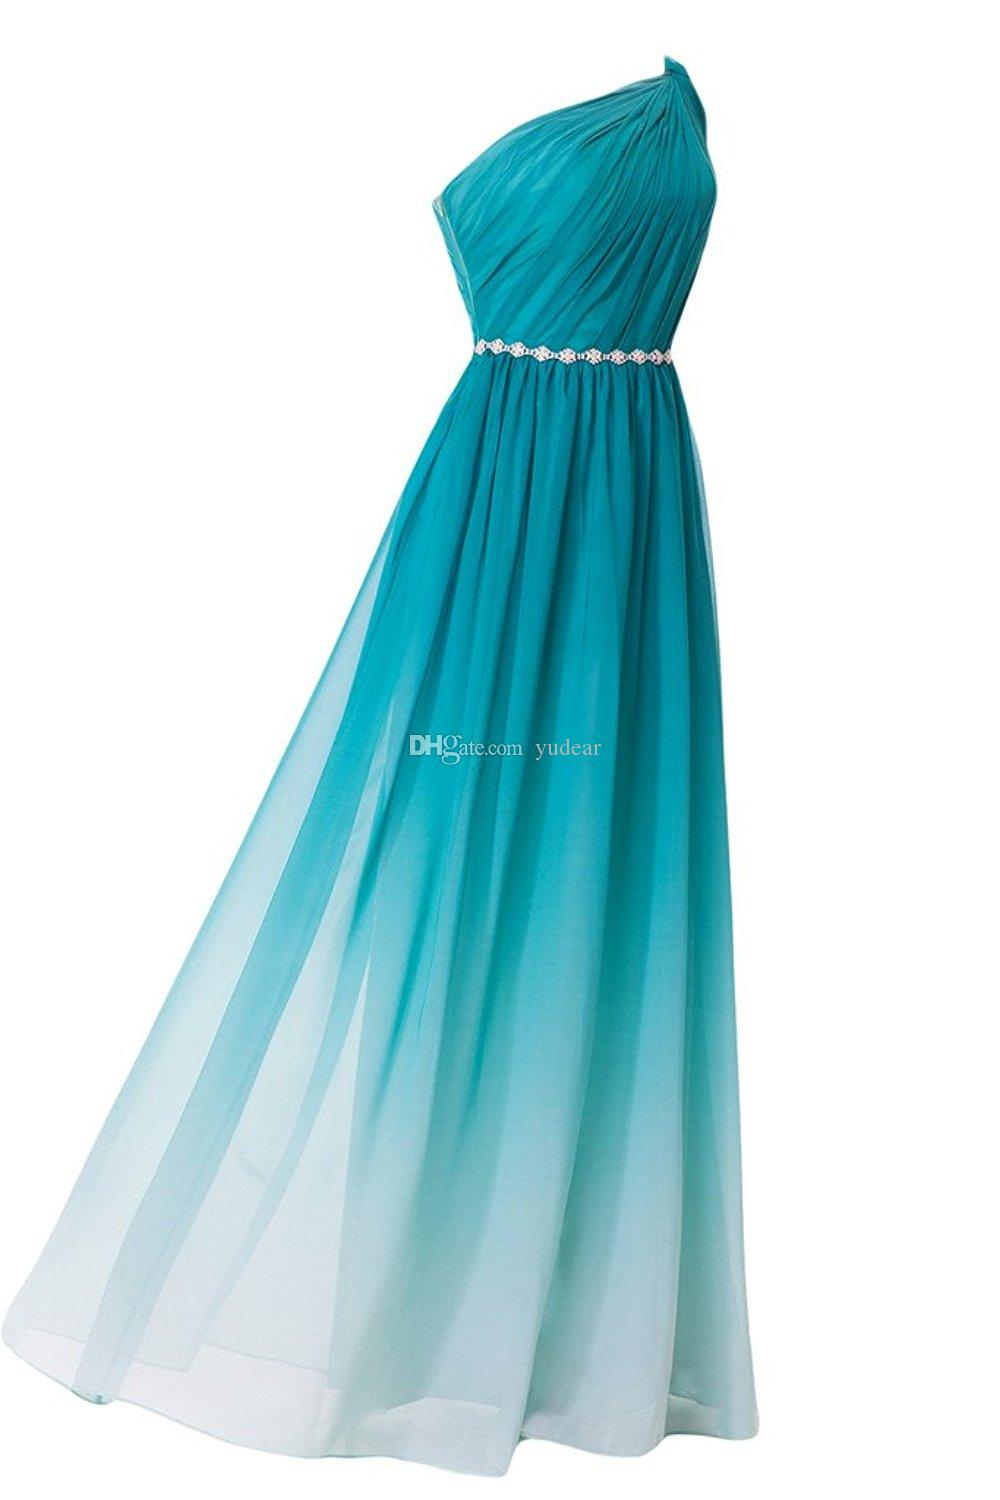 Sassy 2019 One Shoulde A-line Gradient Color Prom Dresses Beads Sash Zipper Side Evening Gowns with Draped Ruched Maid of Honor Gowns